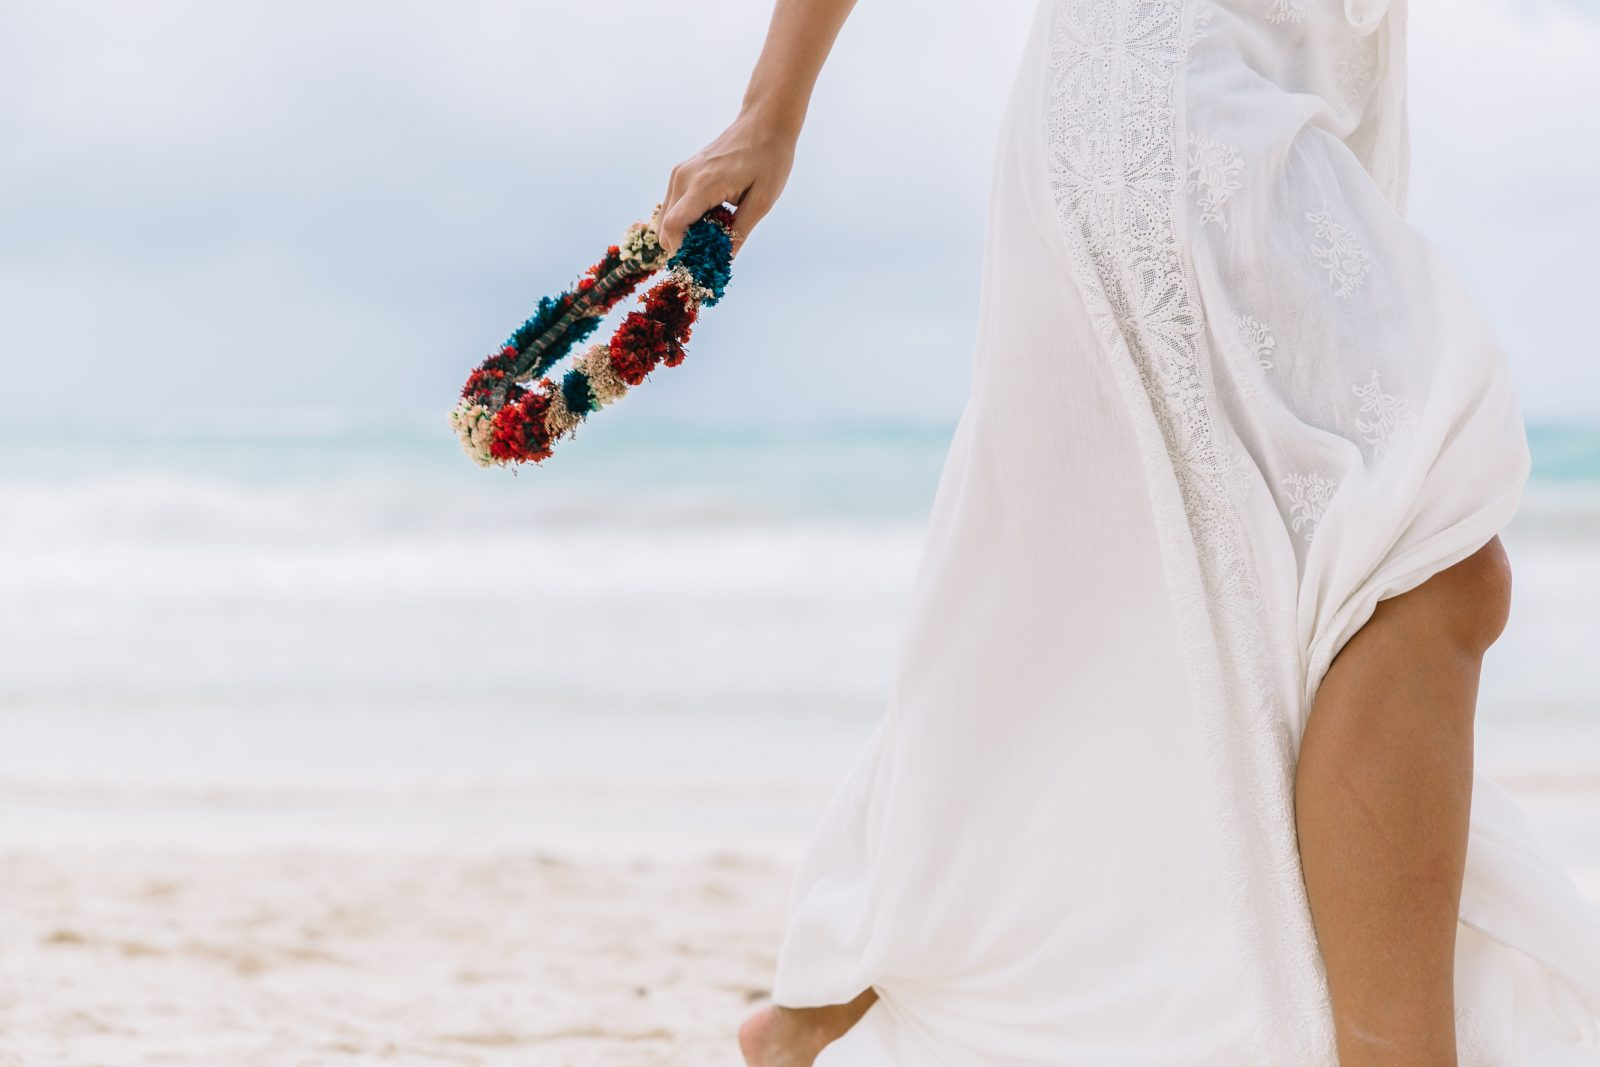 white_long_dress-boho_style-tulum_mexico-beach-floral_crown-outfit-collage_vintage-29